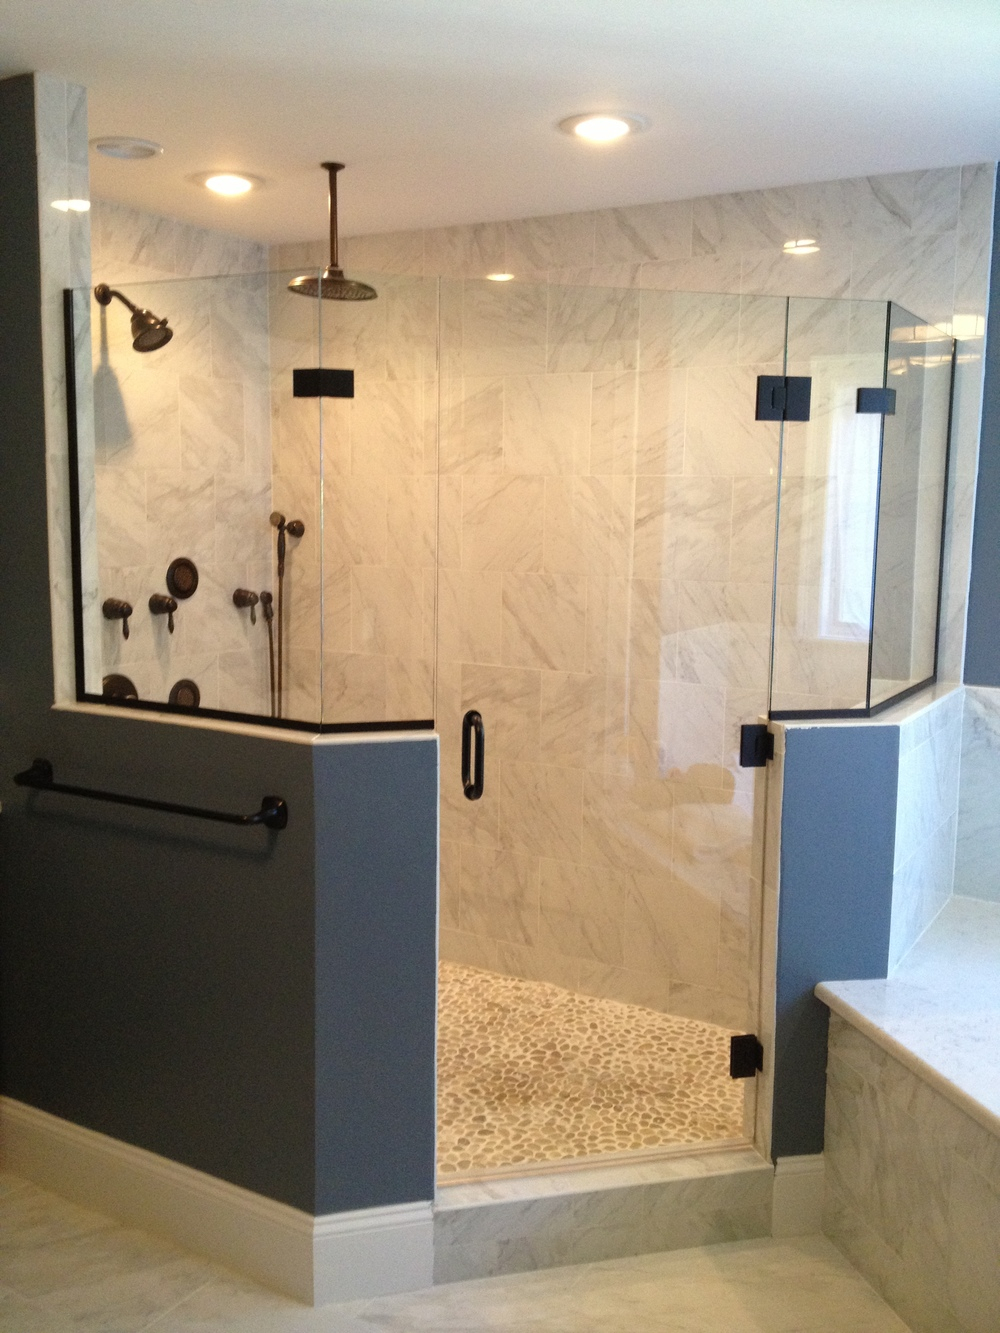 Unique Shower Door Custom Frameless Shower Doors In Franklin intended for sizing 1000 X 1333